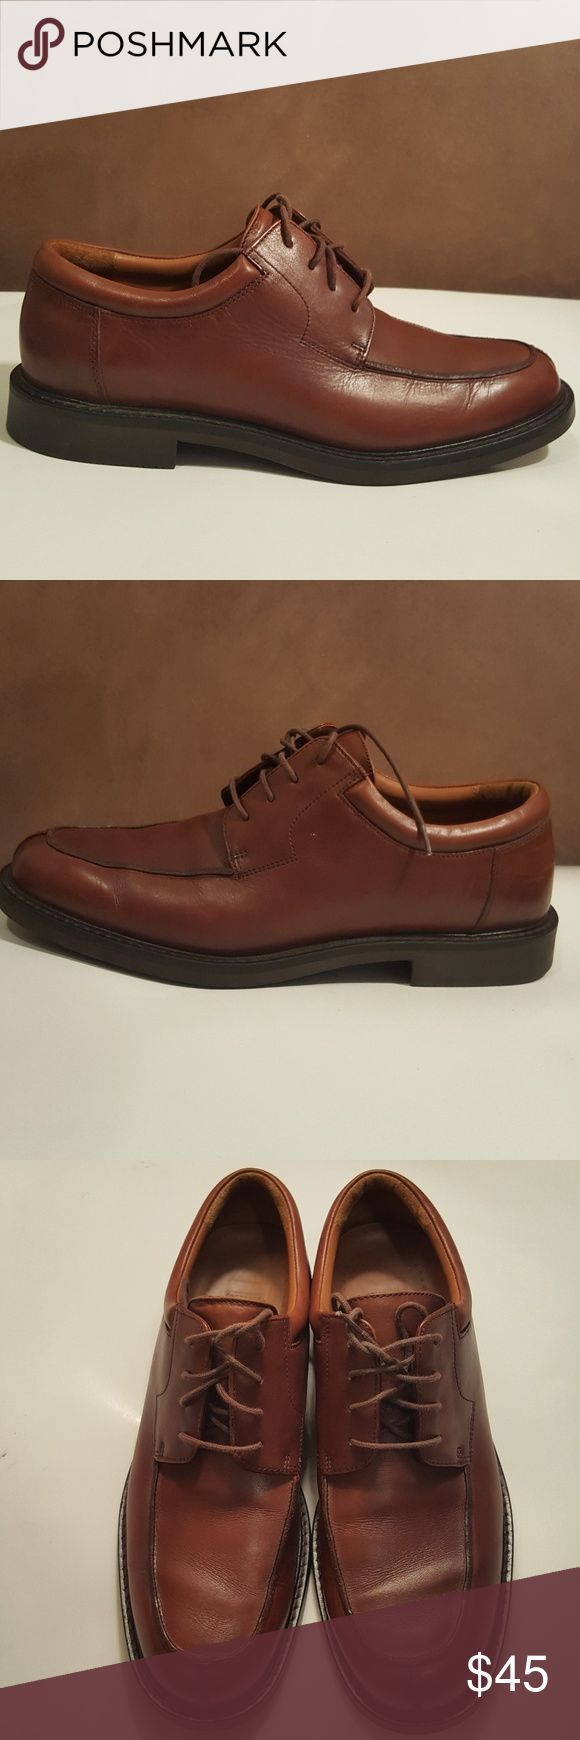 Johnston & Murphy Brown Split Toe Oxfords Size 10 Pre-owned in excellent condition Johnston & Men's Murphy Brown Split Toe Oxfords Size 10. Johnston & Murphy Shoes Oxfords & Derbys